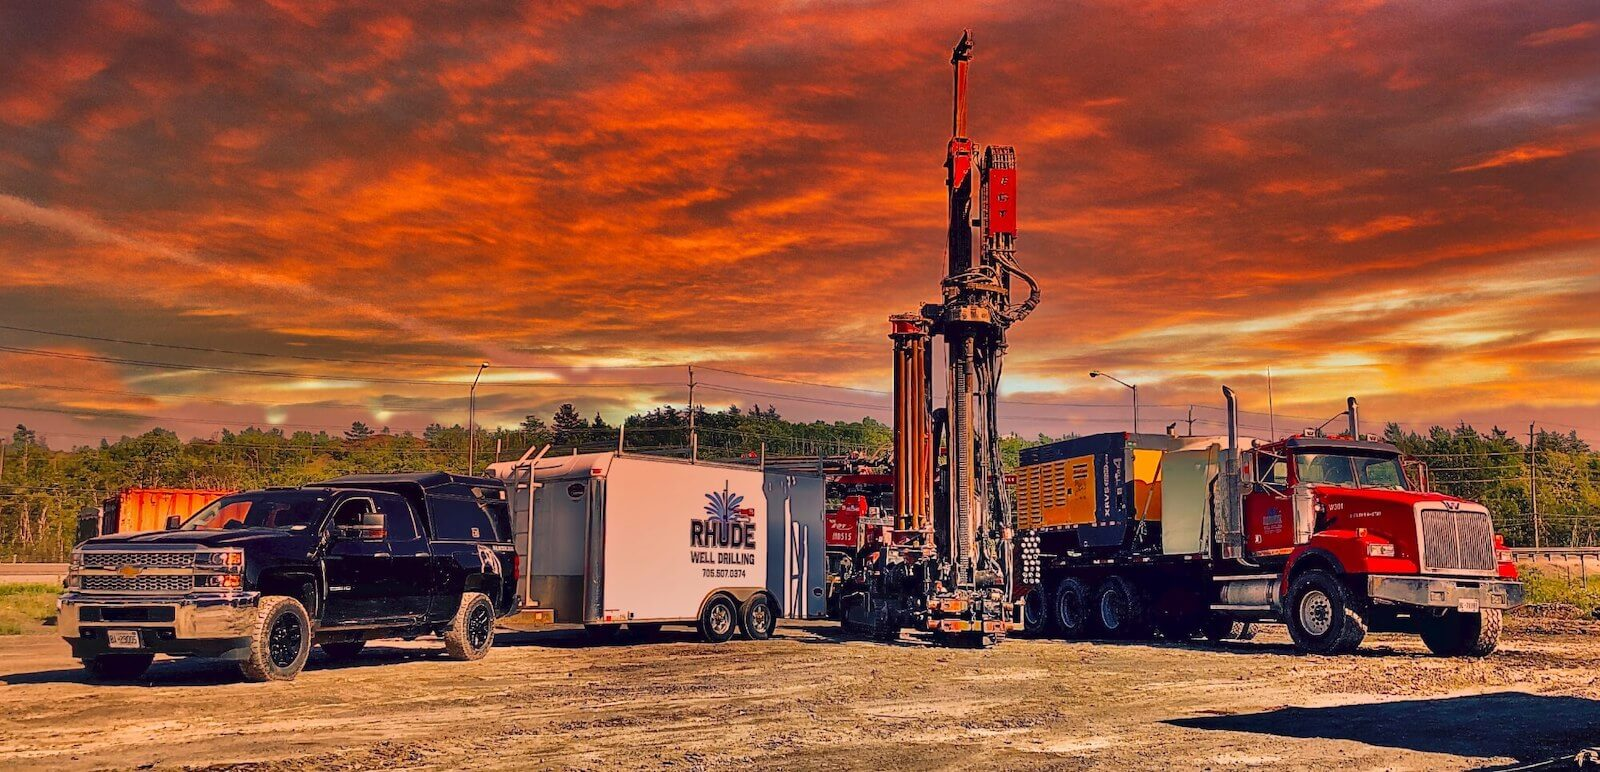 Rhude Well Drilling fleet with a dramatic sunset.